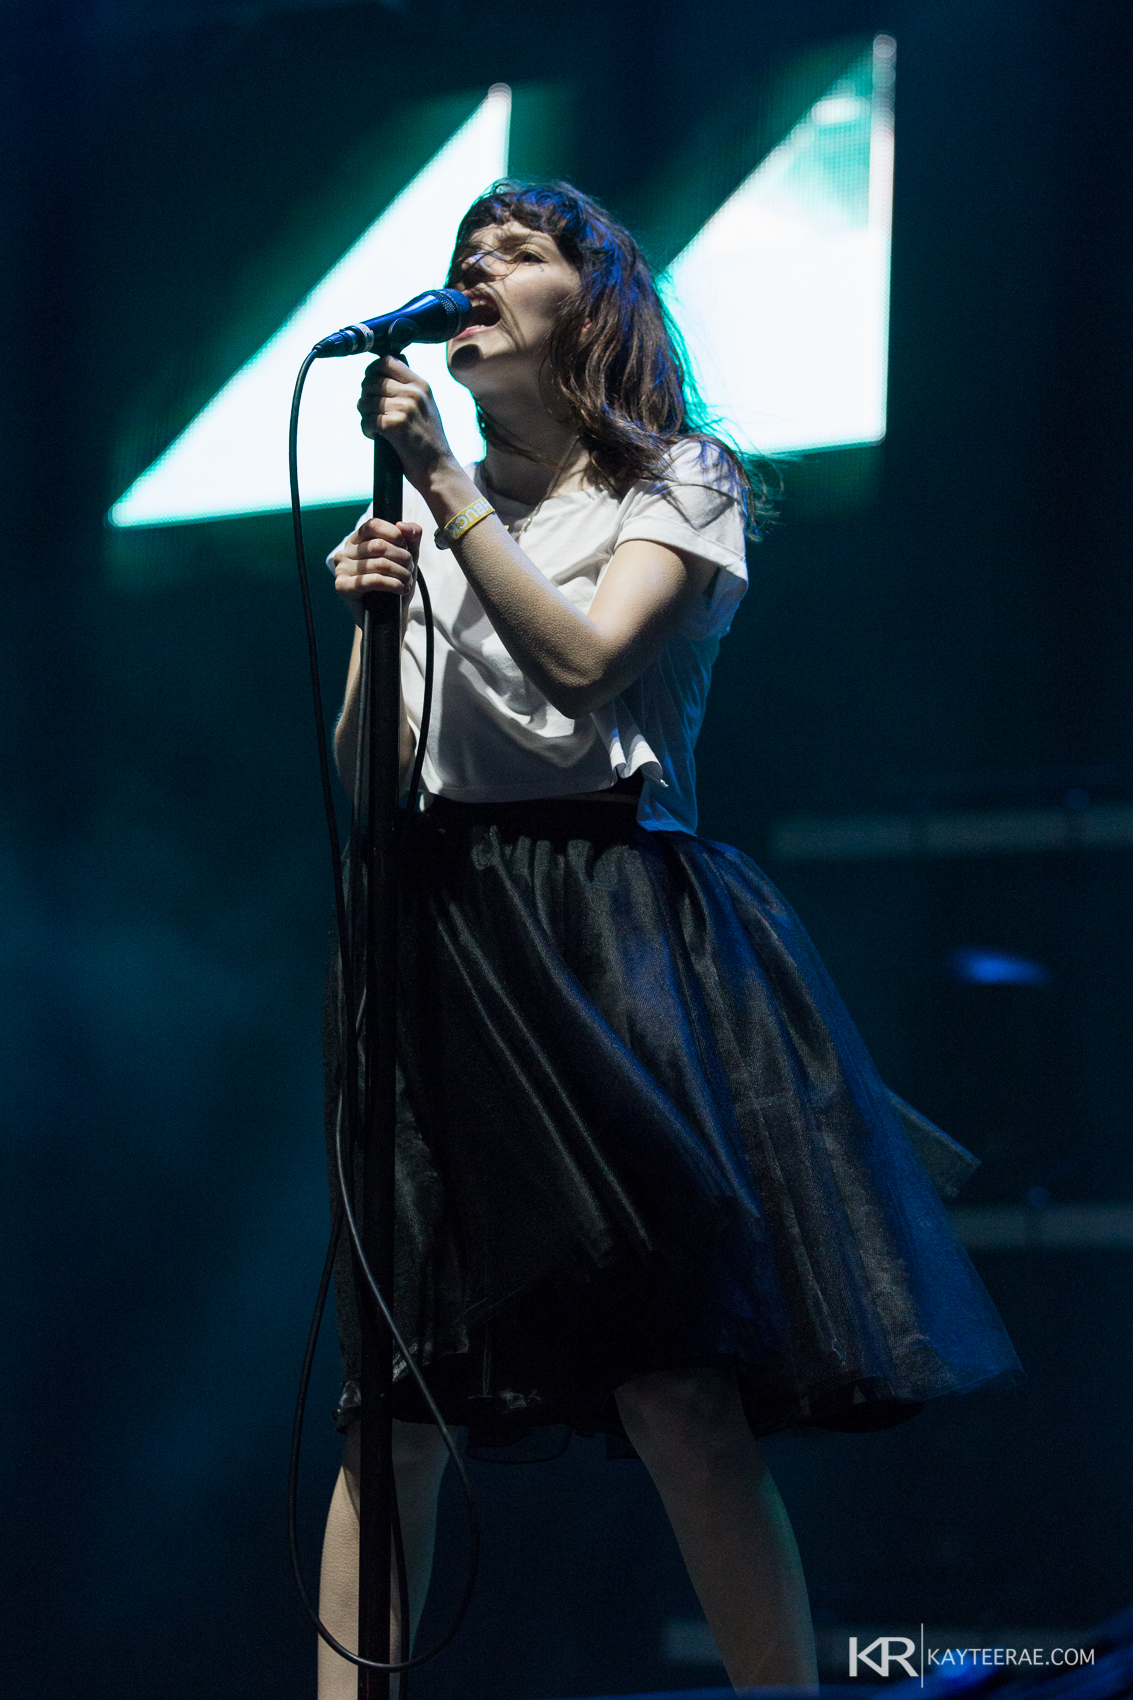 Lauren Mayberry // CHVRCHΞS